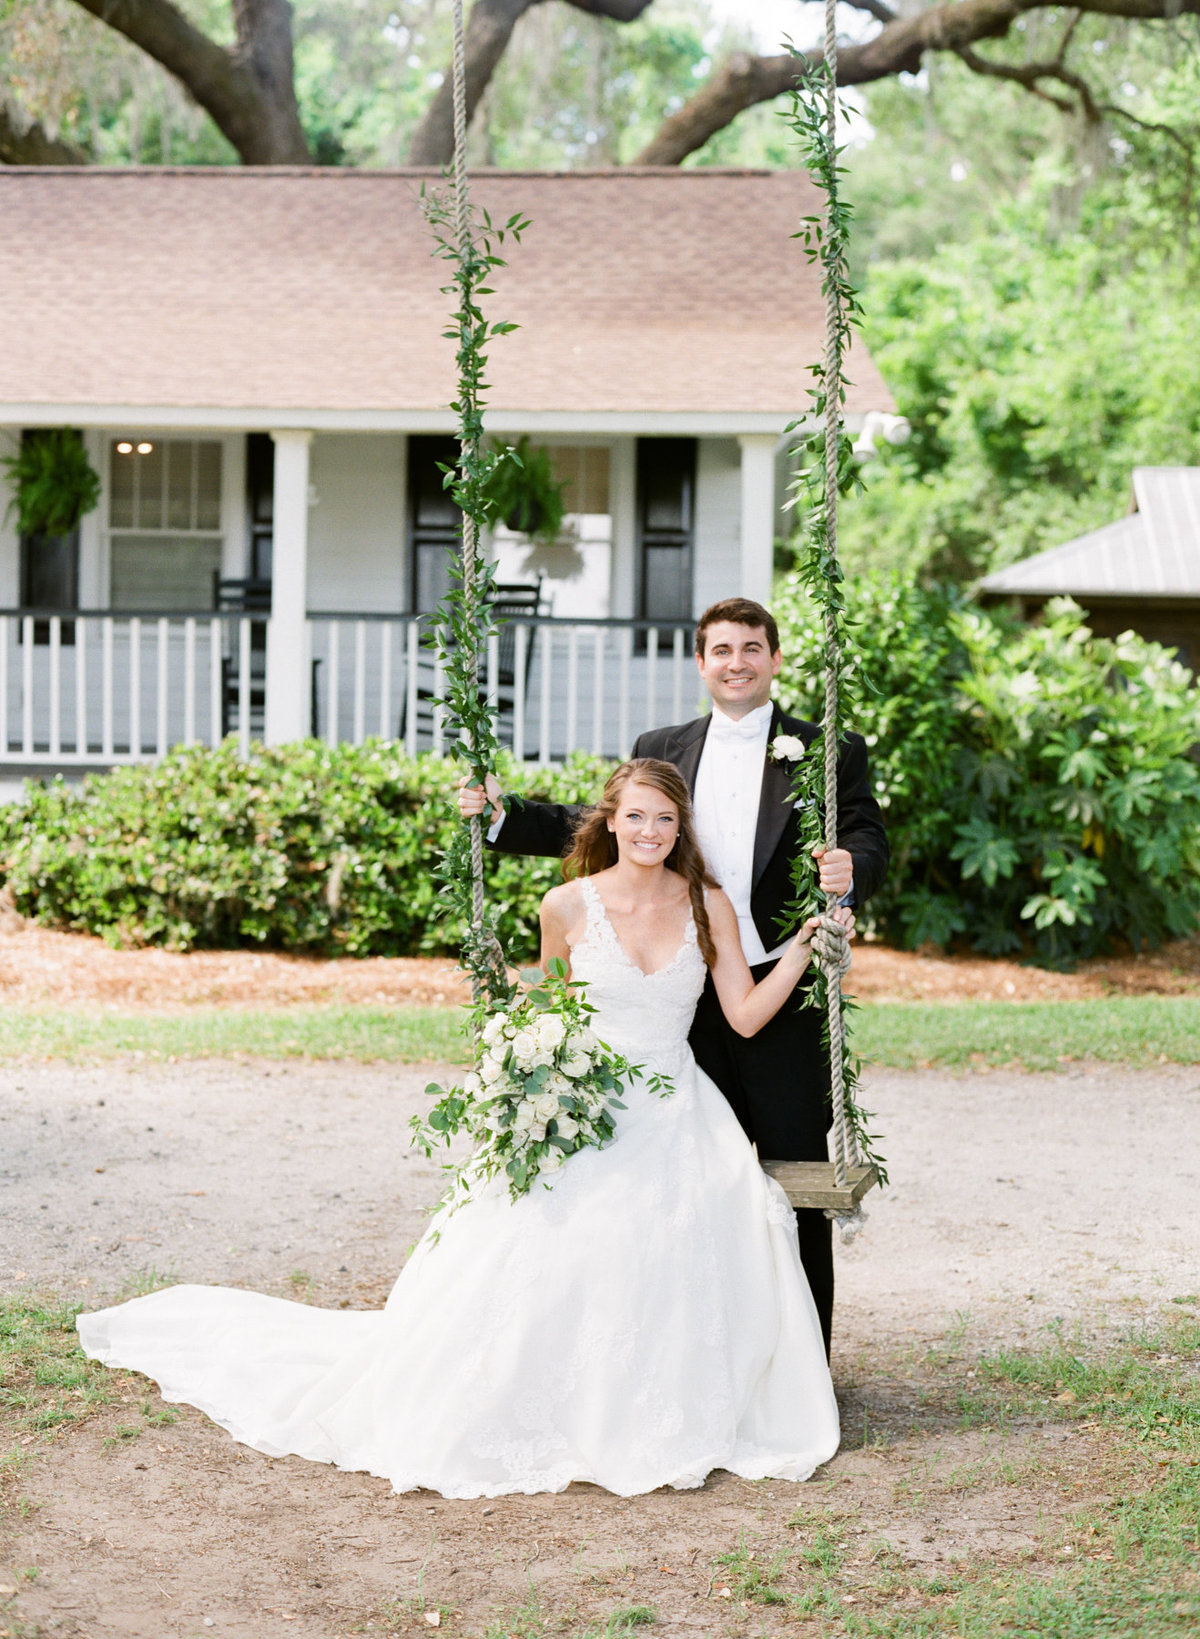 Sarah-Demitri-Wingate-Plantation-Wedding-24